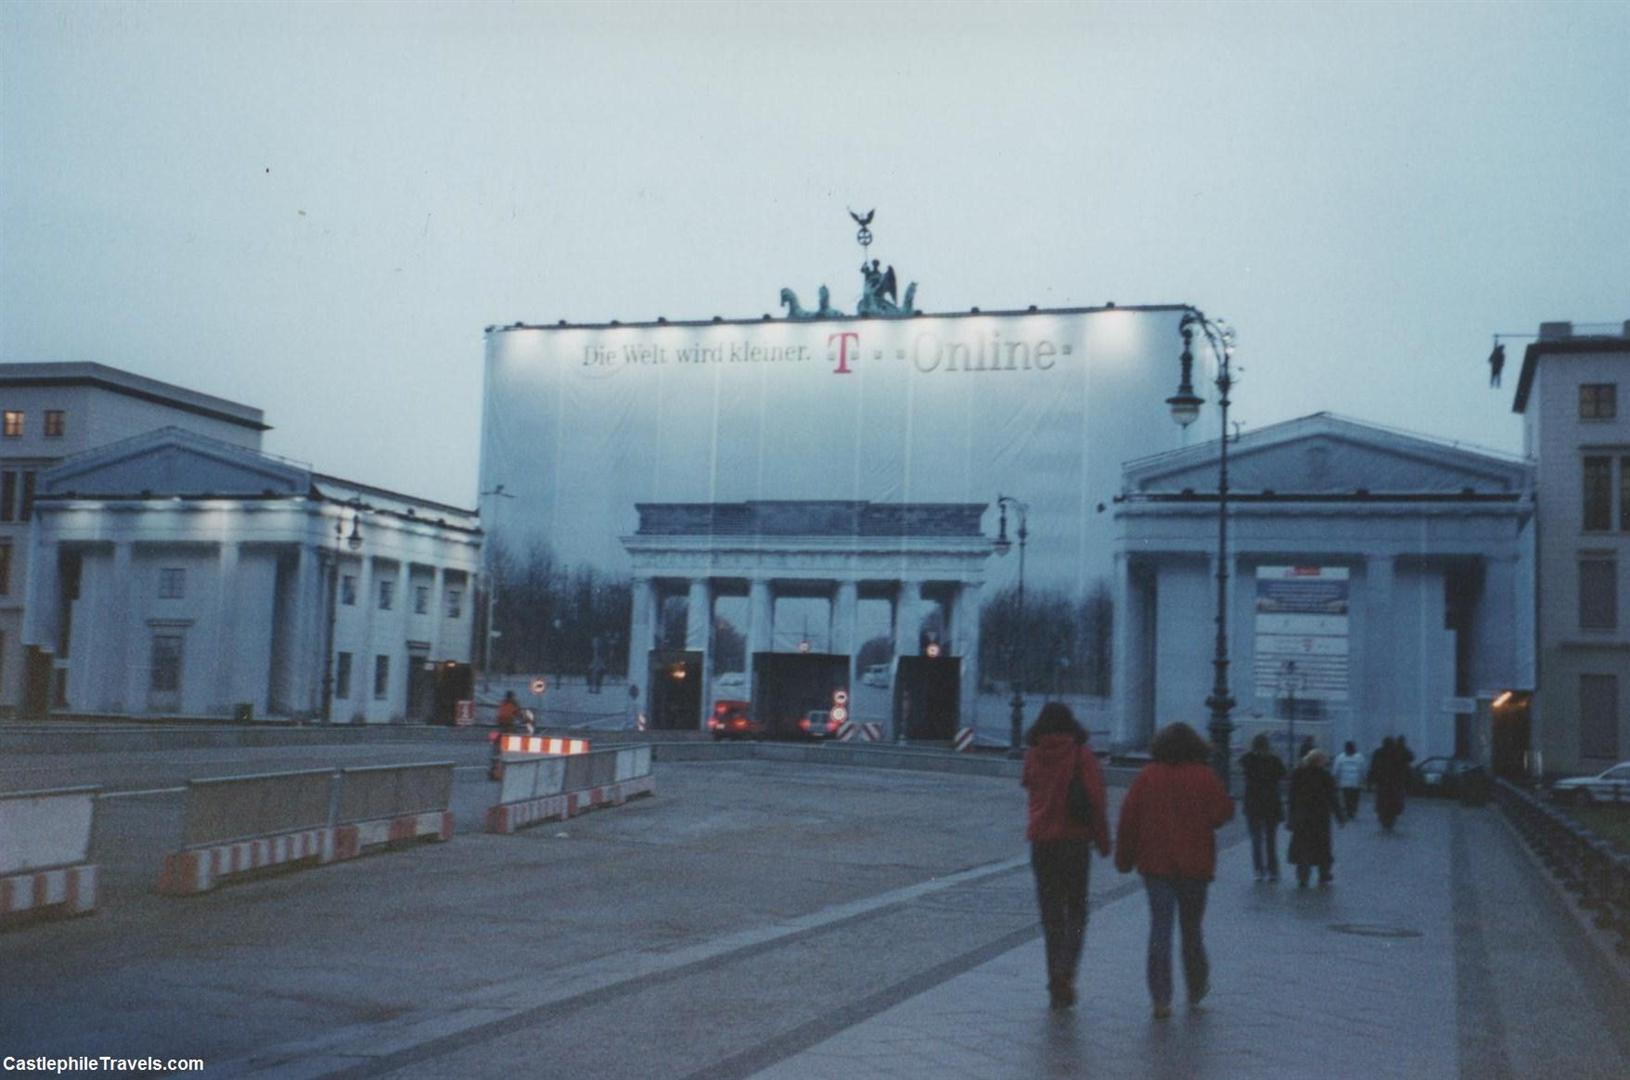 The Brandenburg Gate, undergoing restoration works in 2001.